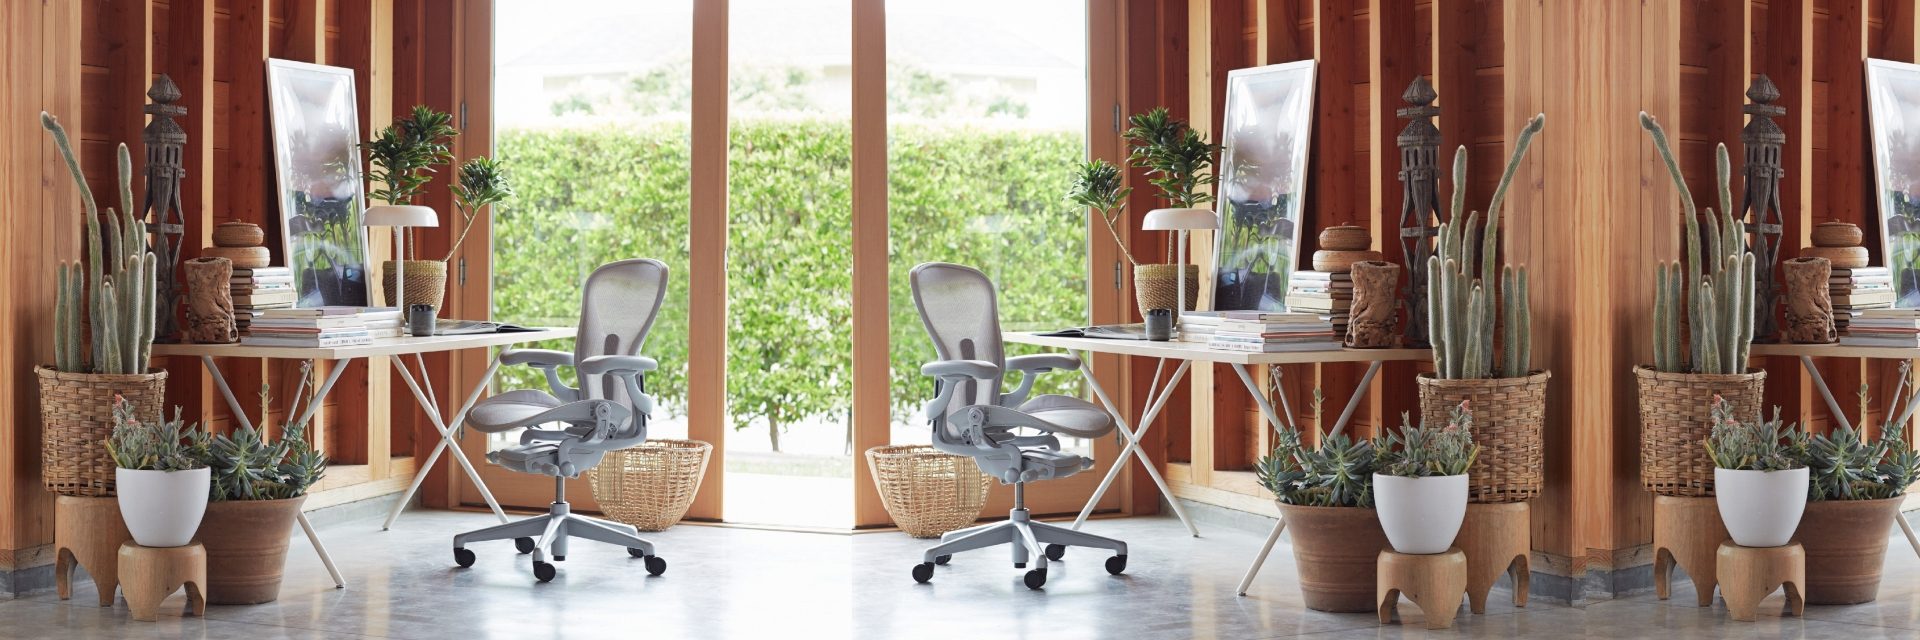 Herman Miller Home Office, Aeron chair, Nelson X-leg table